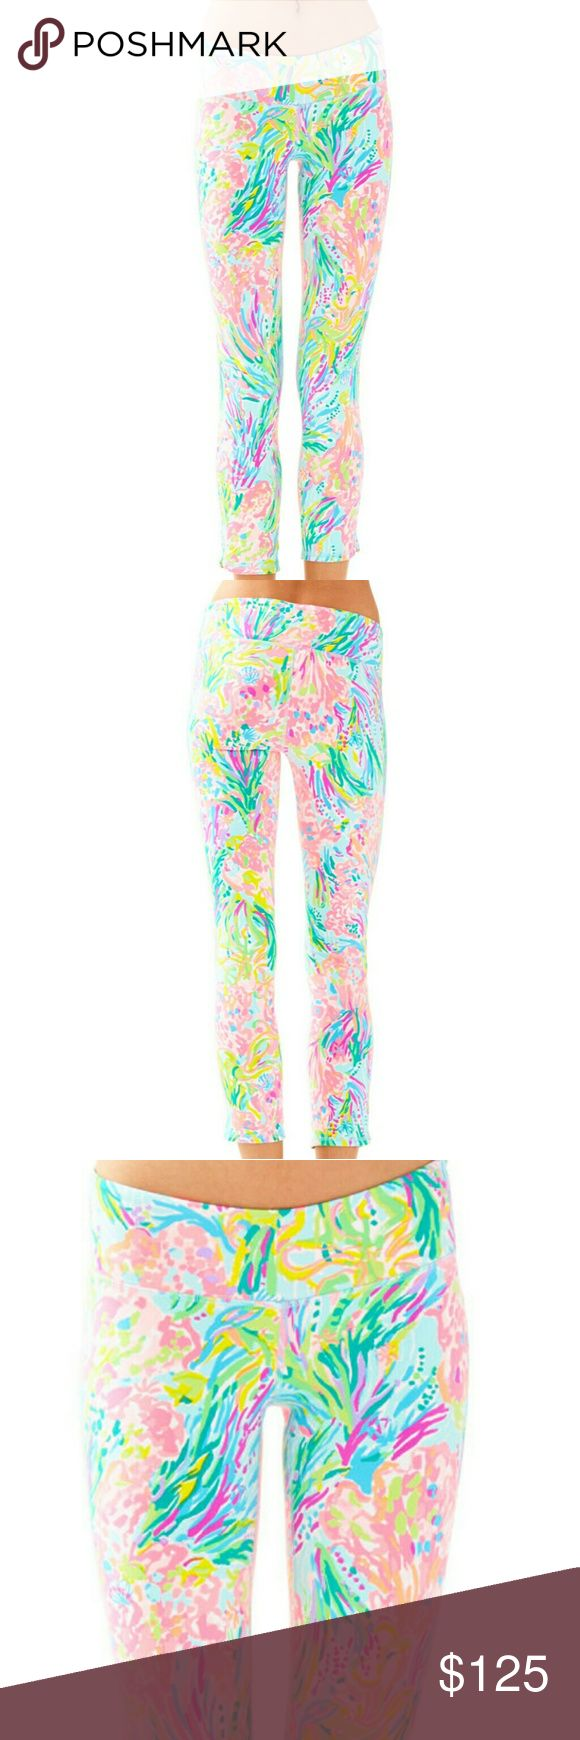 NWT LILLY PULITZER LUXLETIC CROPPED LEGGINGS L New with tags Too big for me that's why I'm selling them Size large Multi fan sea print Cropped PRICE IS FIRM  PRICE IS FIRM  NO TRADES Lilly Pulitzer Pants Leggings